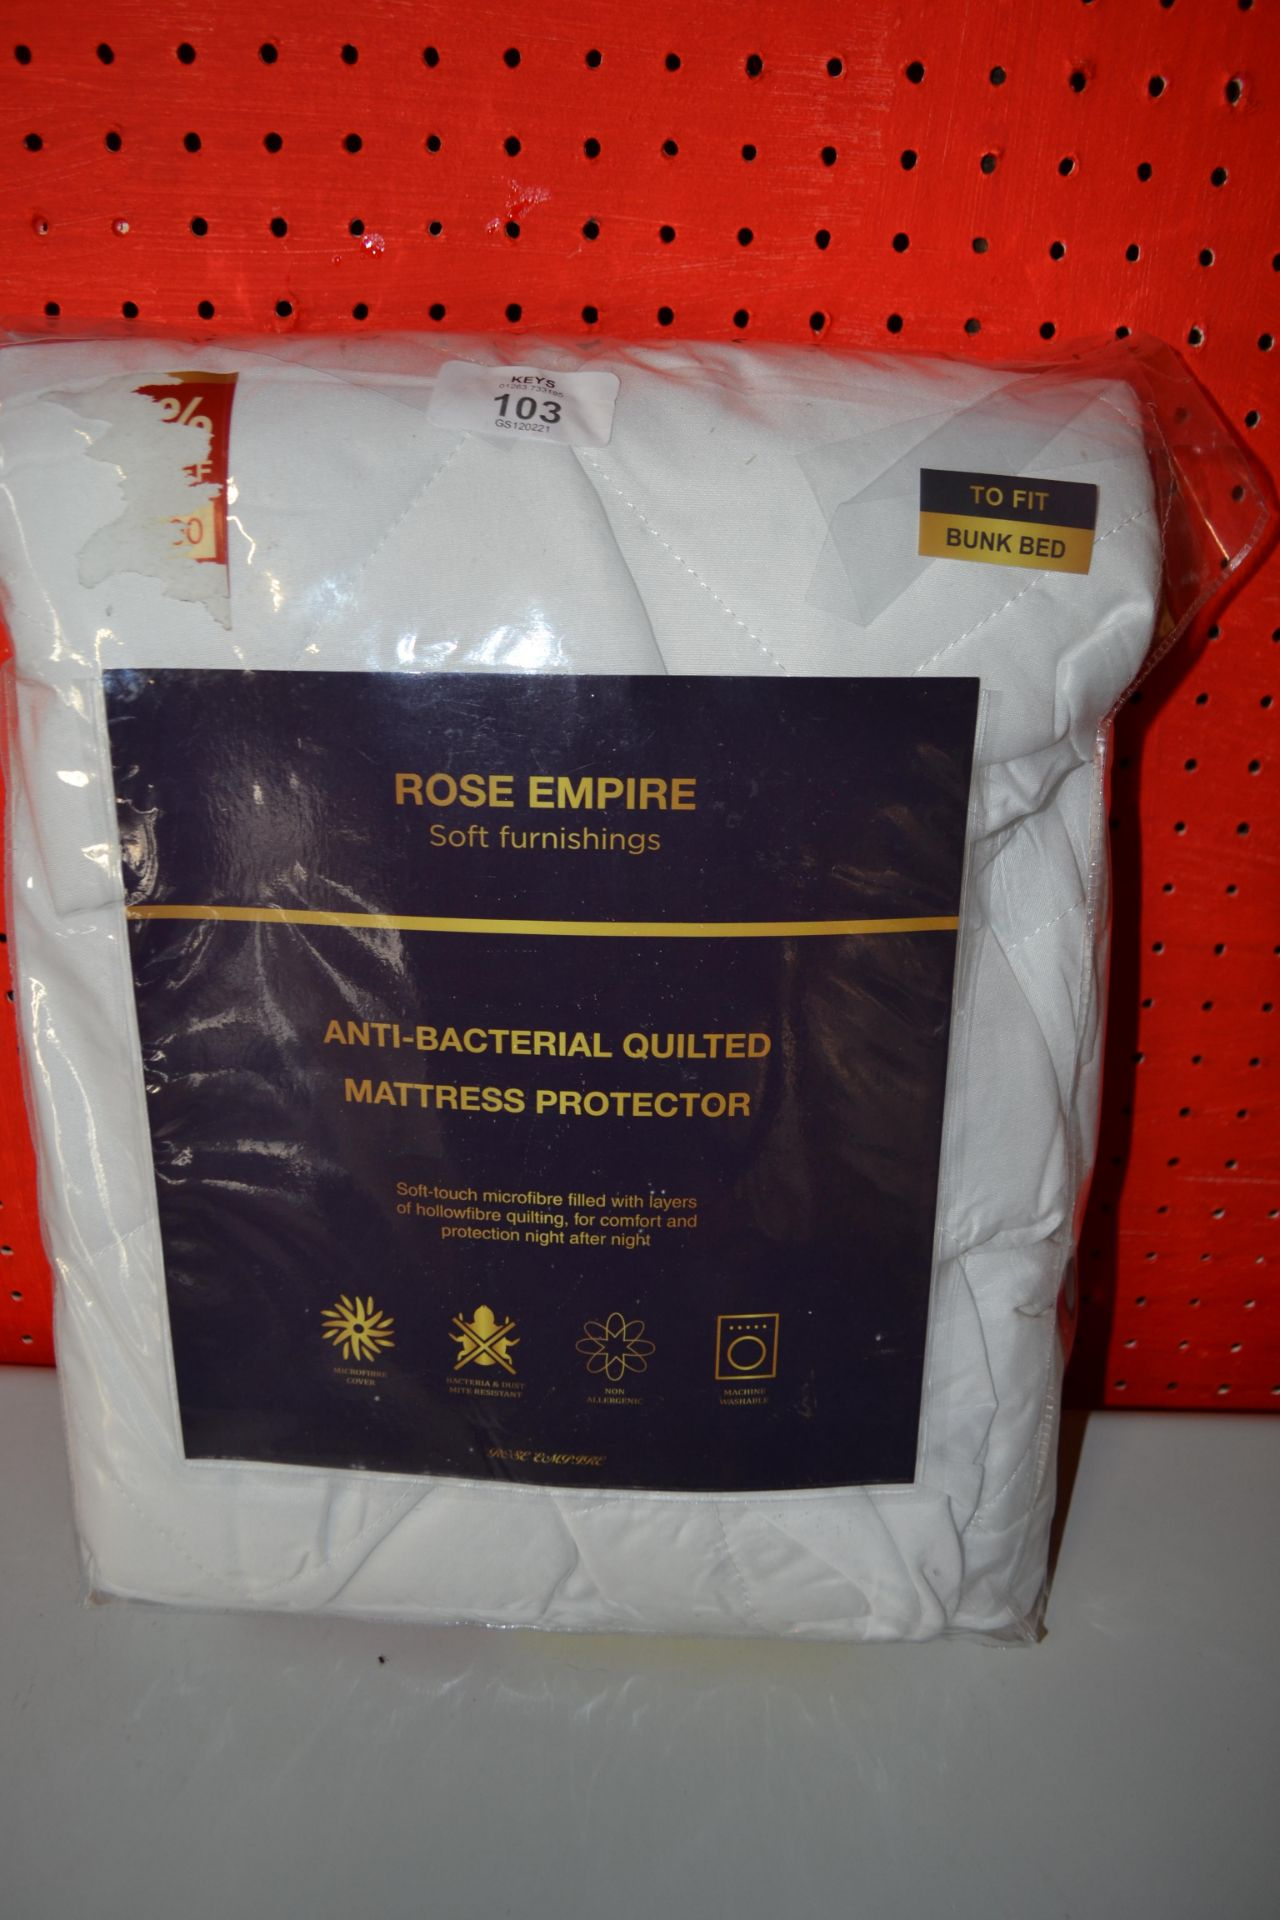 ROSE EMPIRE ANTI-BACTERIAL QUILTED MATTRESS PROTECTOR (BUNK BED)